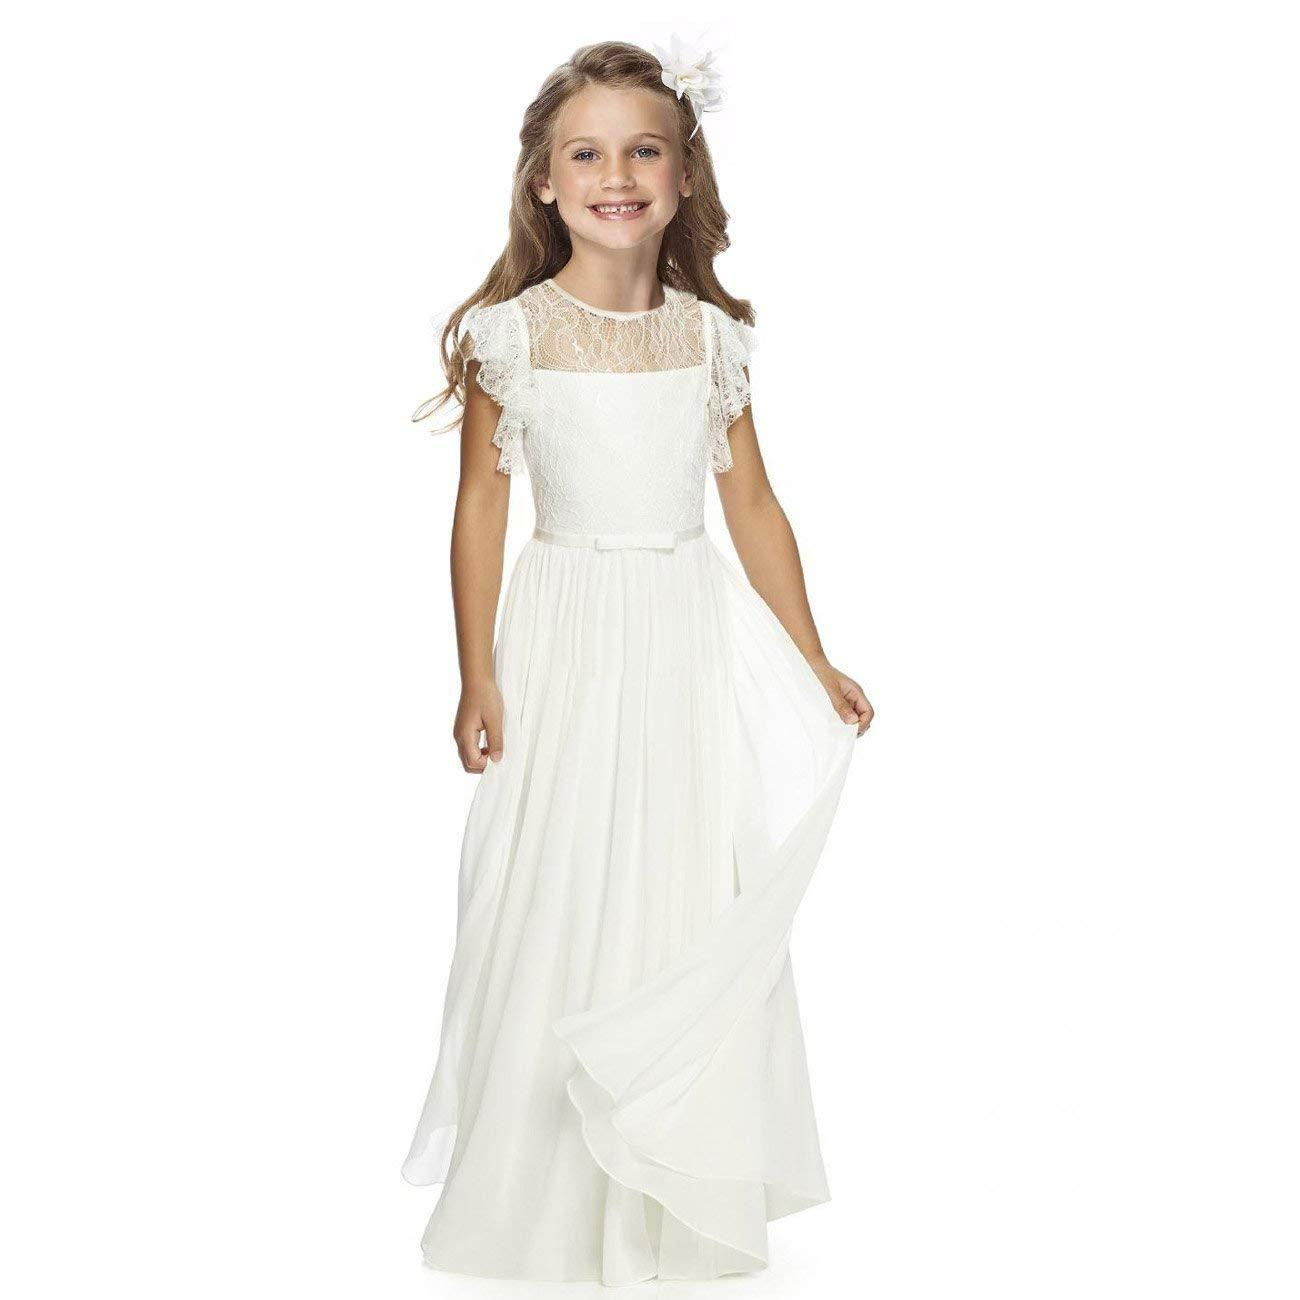 Fashion Girl Cotton Princess Dress Summer Children's Wedding Clothing Girl Chiffon All White Beach Dress Best Party Kids Clothes image